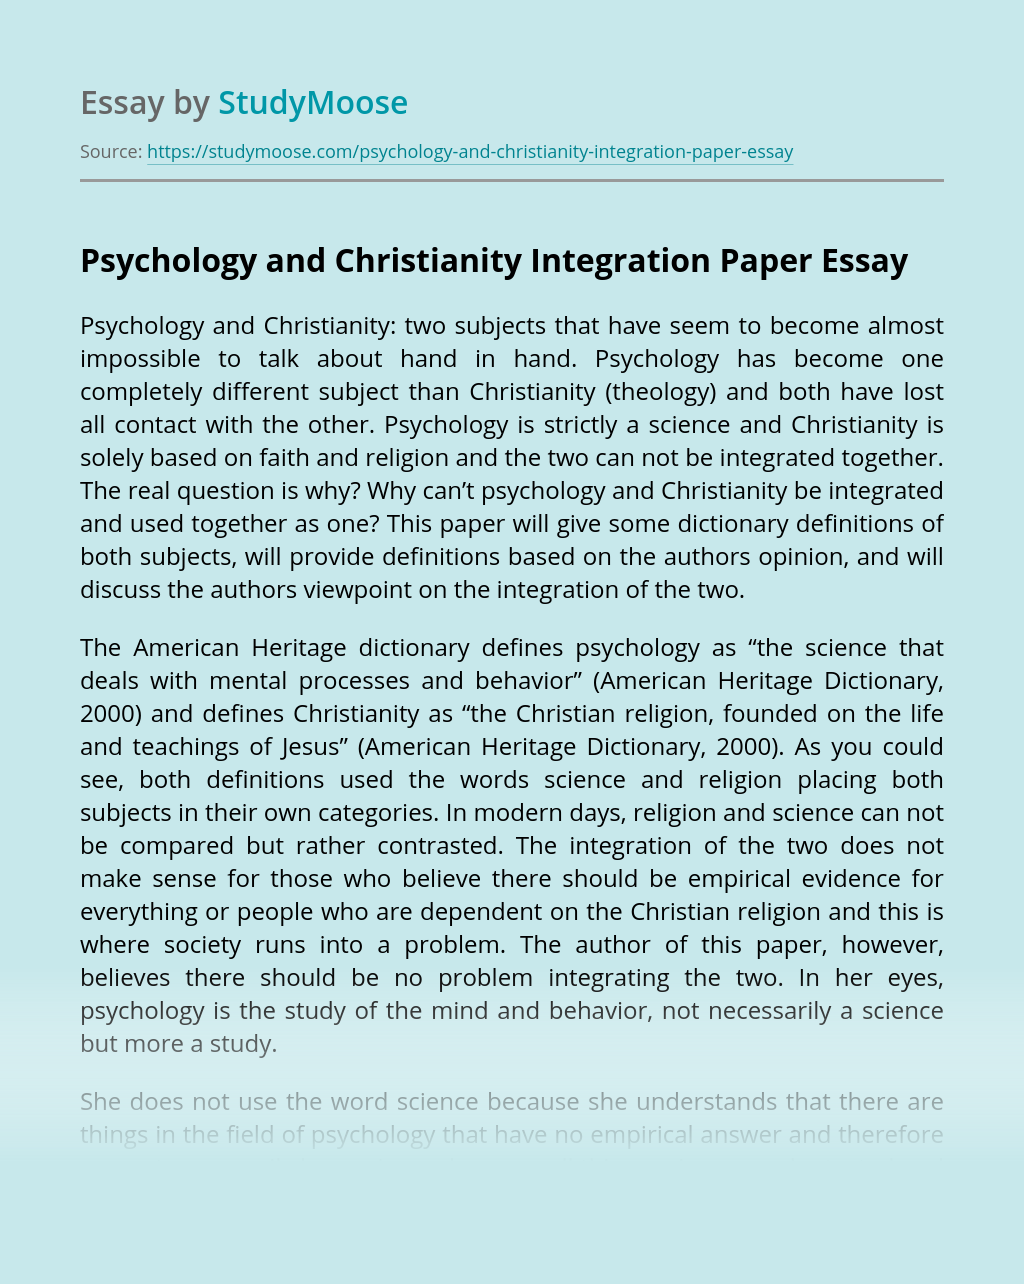 Psychology and Christianity Integration Paper